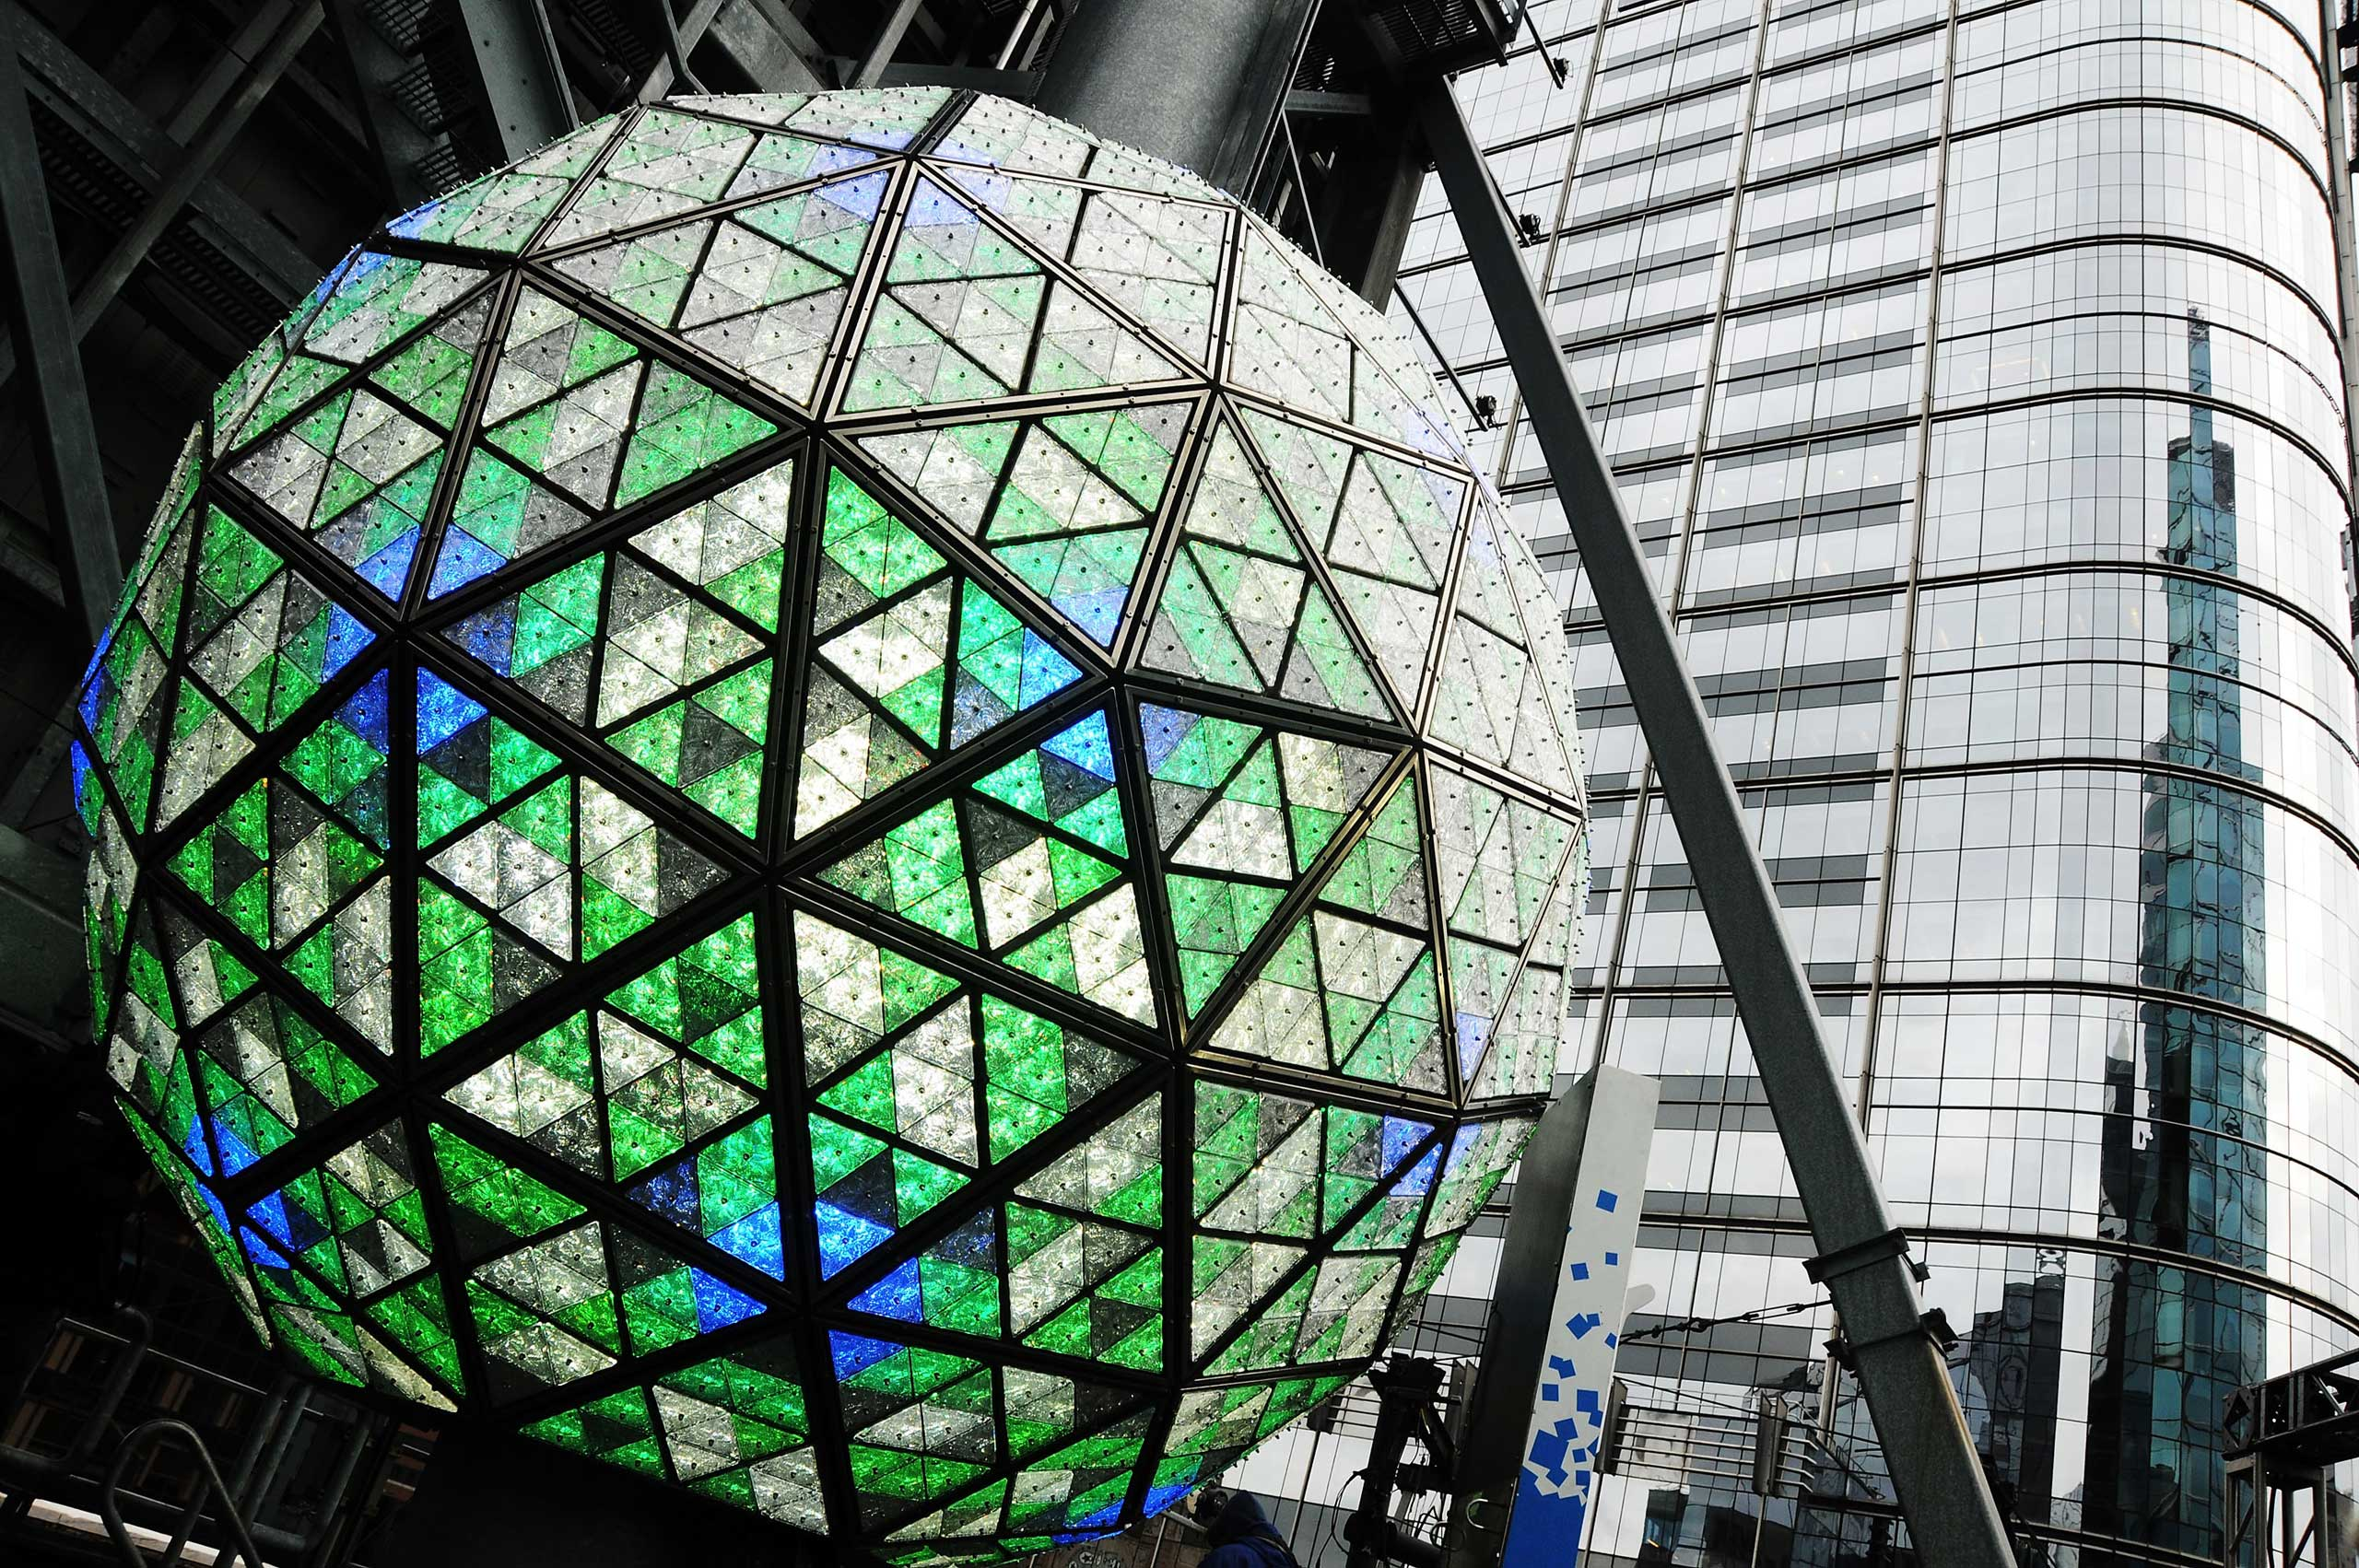 A view of the general atmosphere at the 2014 New Year's Eve Philips Ball Test at One Times Square in New York City on Dec. 30, 2013.